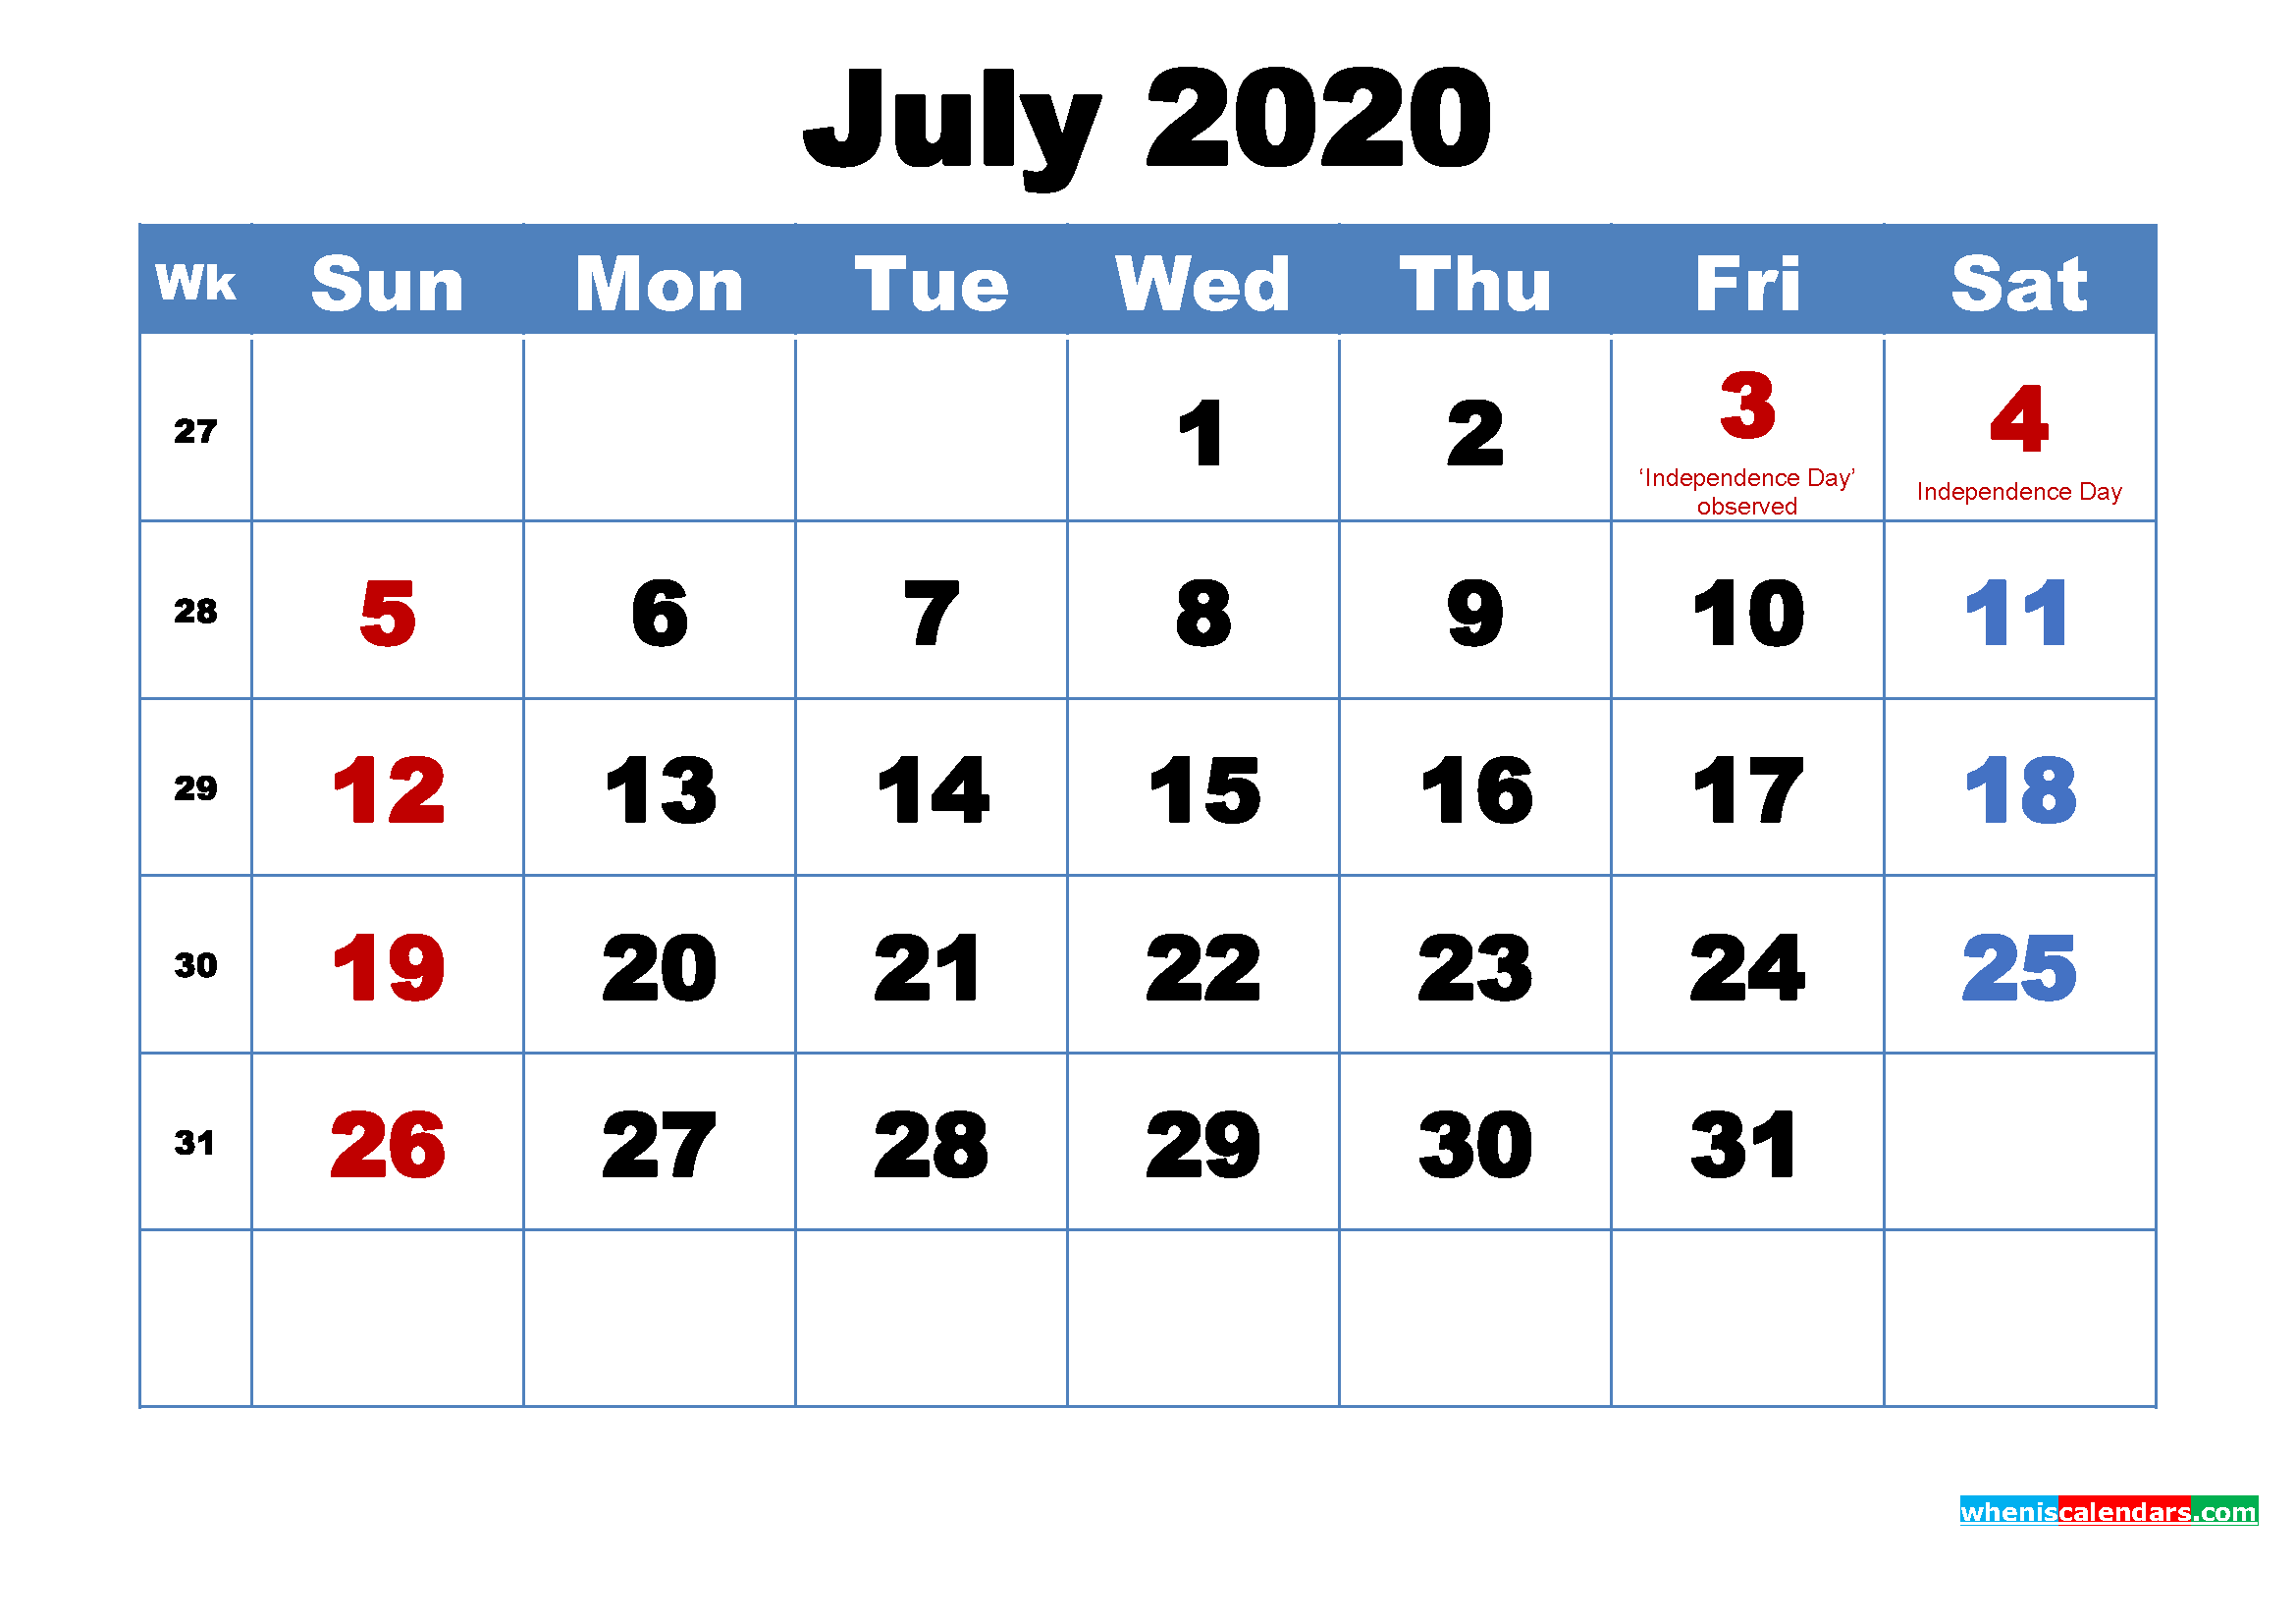 July 2020 Calendar Wallpapers Free Download